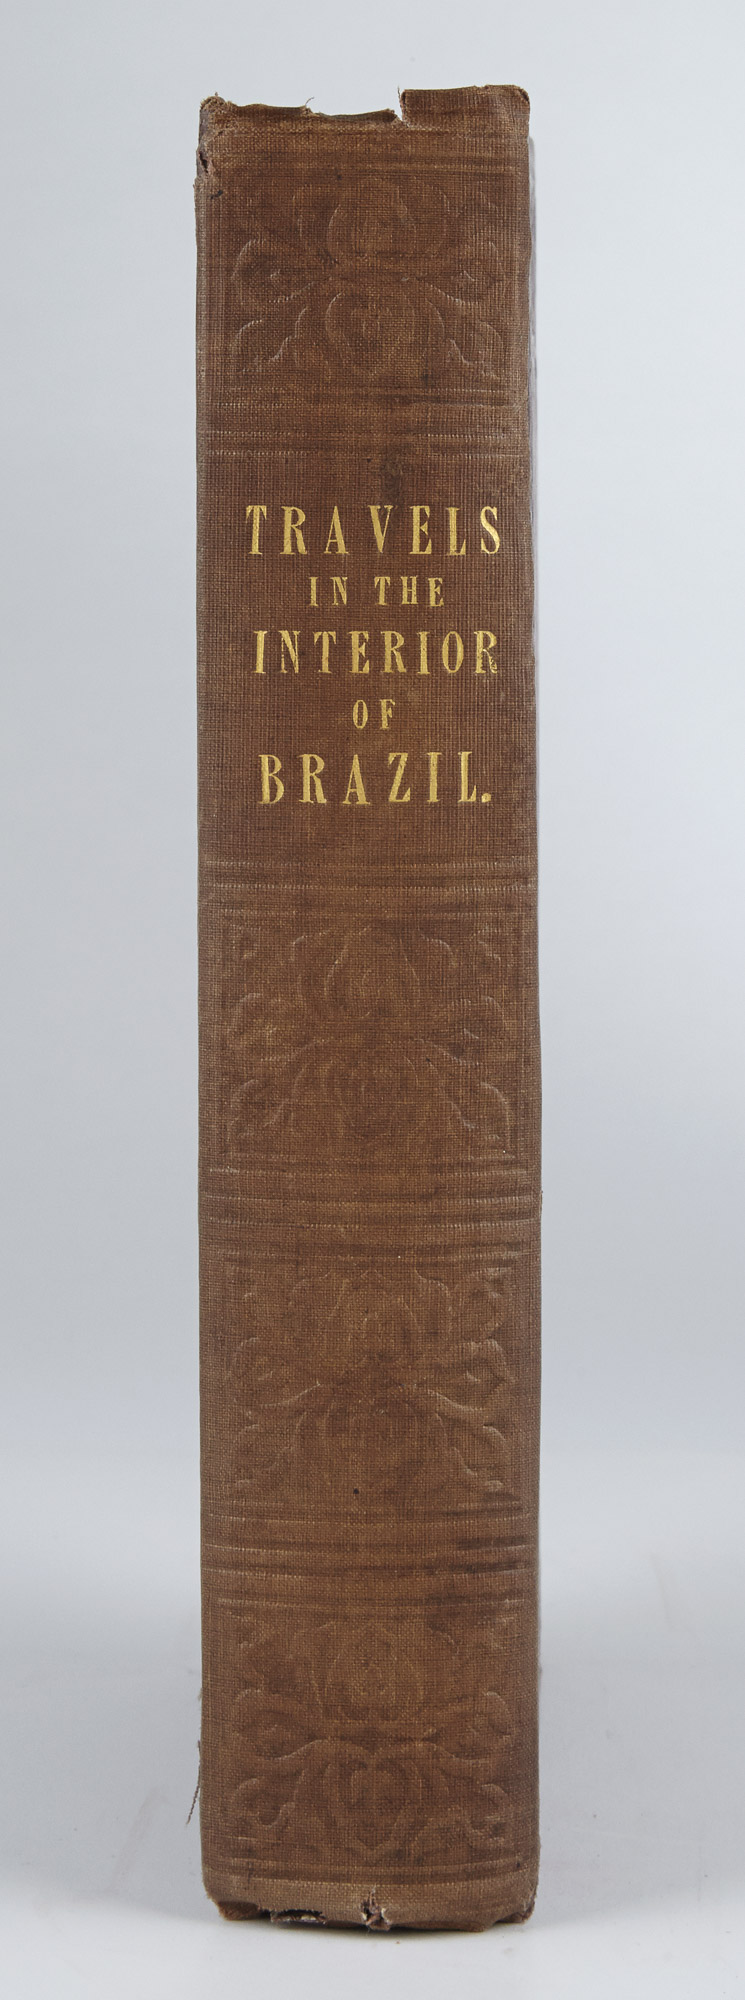 Lot image - [BRAZIL]  GARDNER, GEORGE. Travels in the Interior of Brazil, principally Through The Northern provinces and the gold and diamond districts.